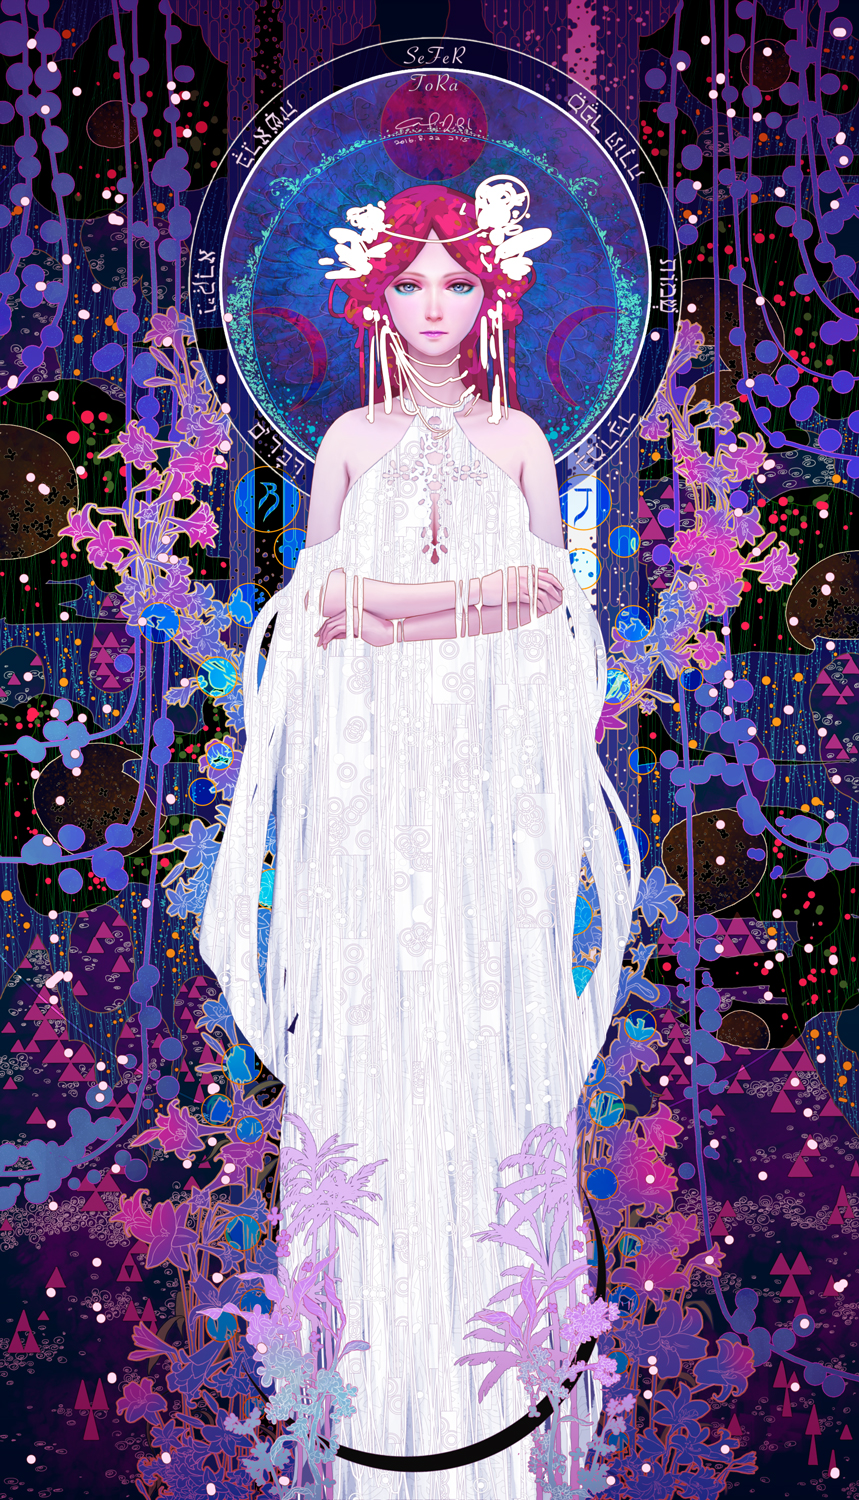 High Priestess Full Colorful Deck Major Stock Illustration: Tarot-02-The High Priestess By Casimir0304 On DeviantArt